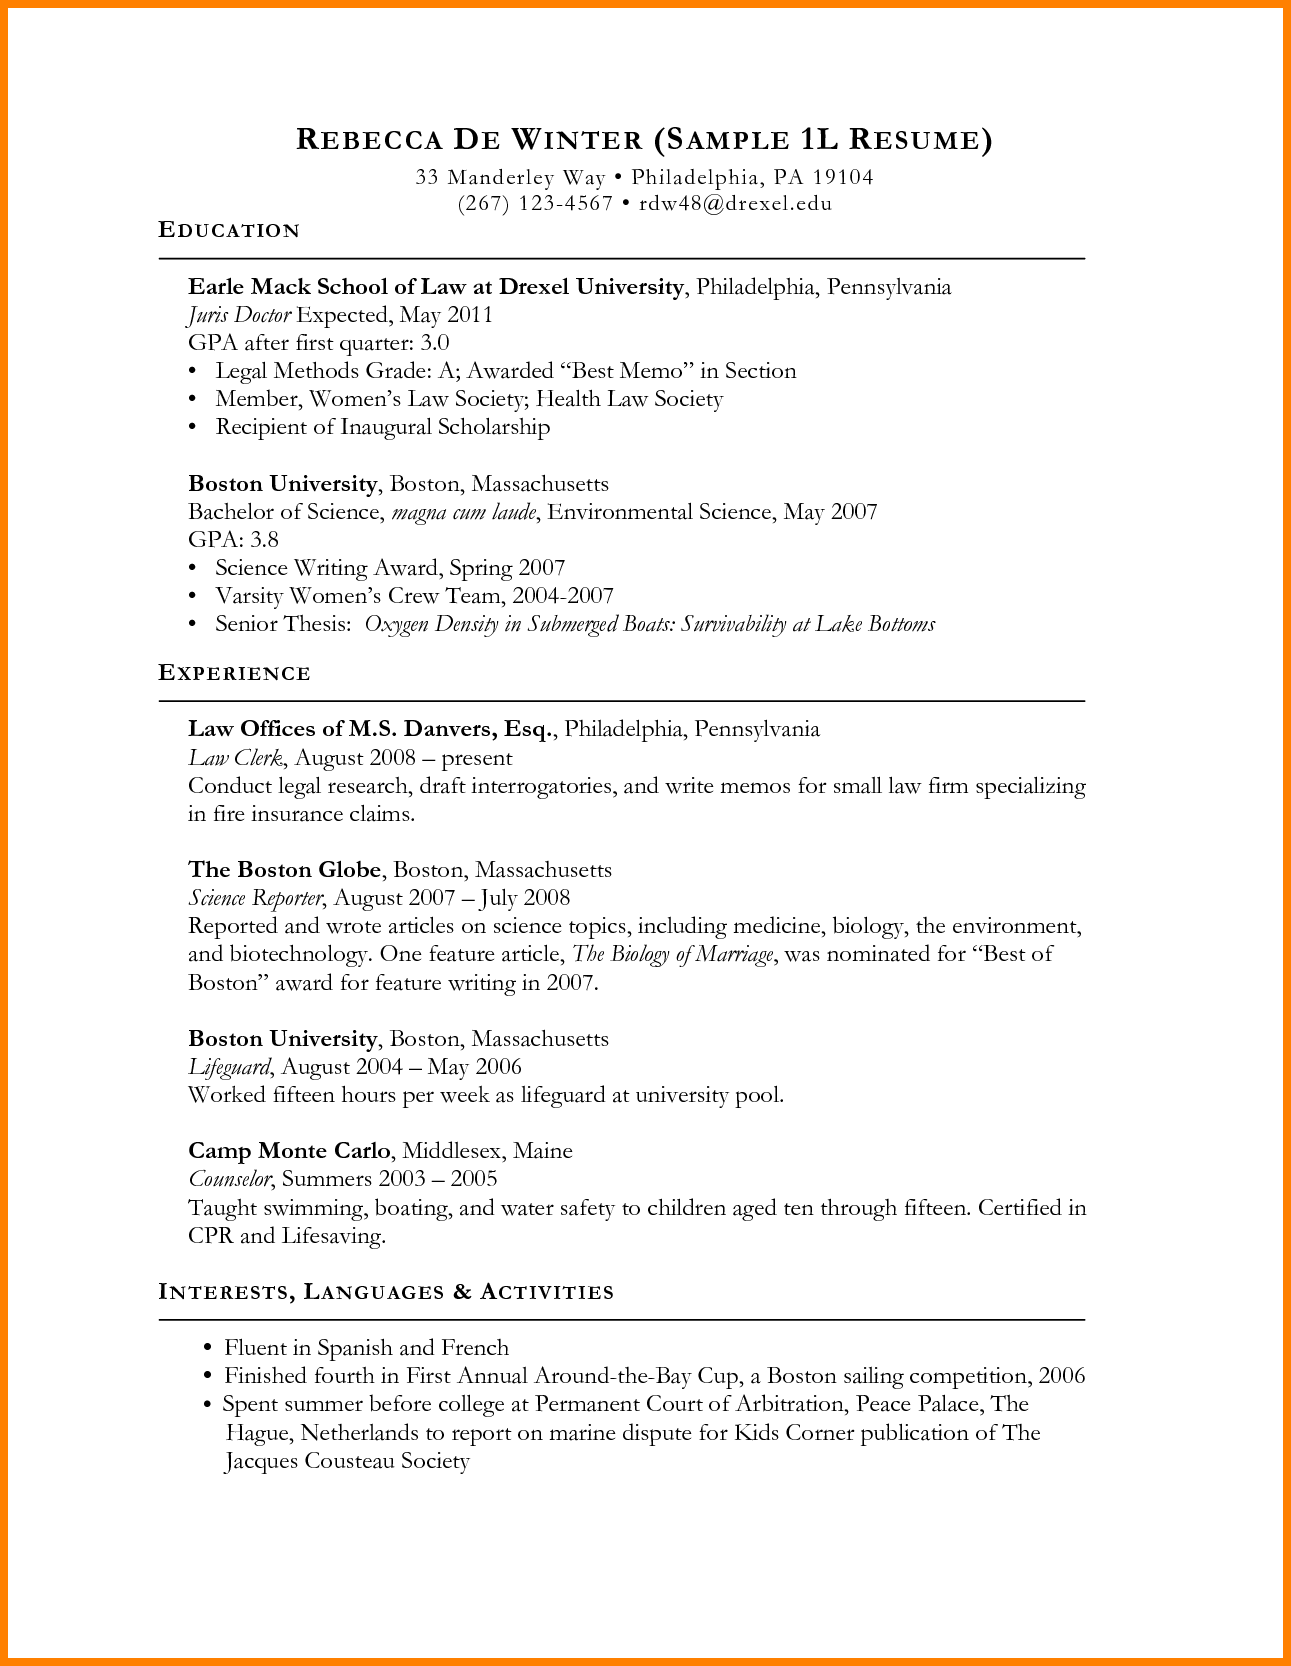 Personal Statement Examples For Resume 10 Resume For Law School Application Resume  Law School Resume .  Sample Law School Resume